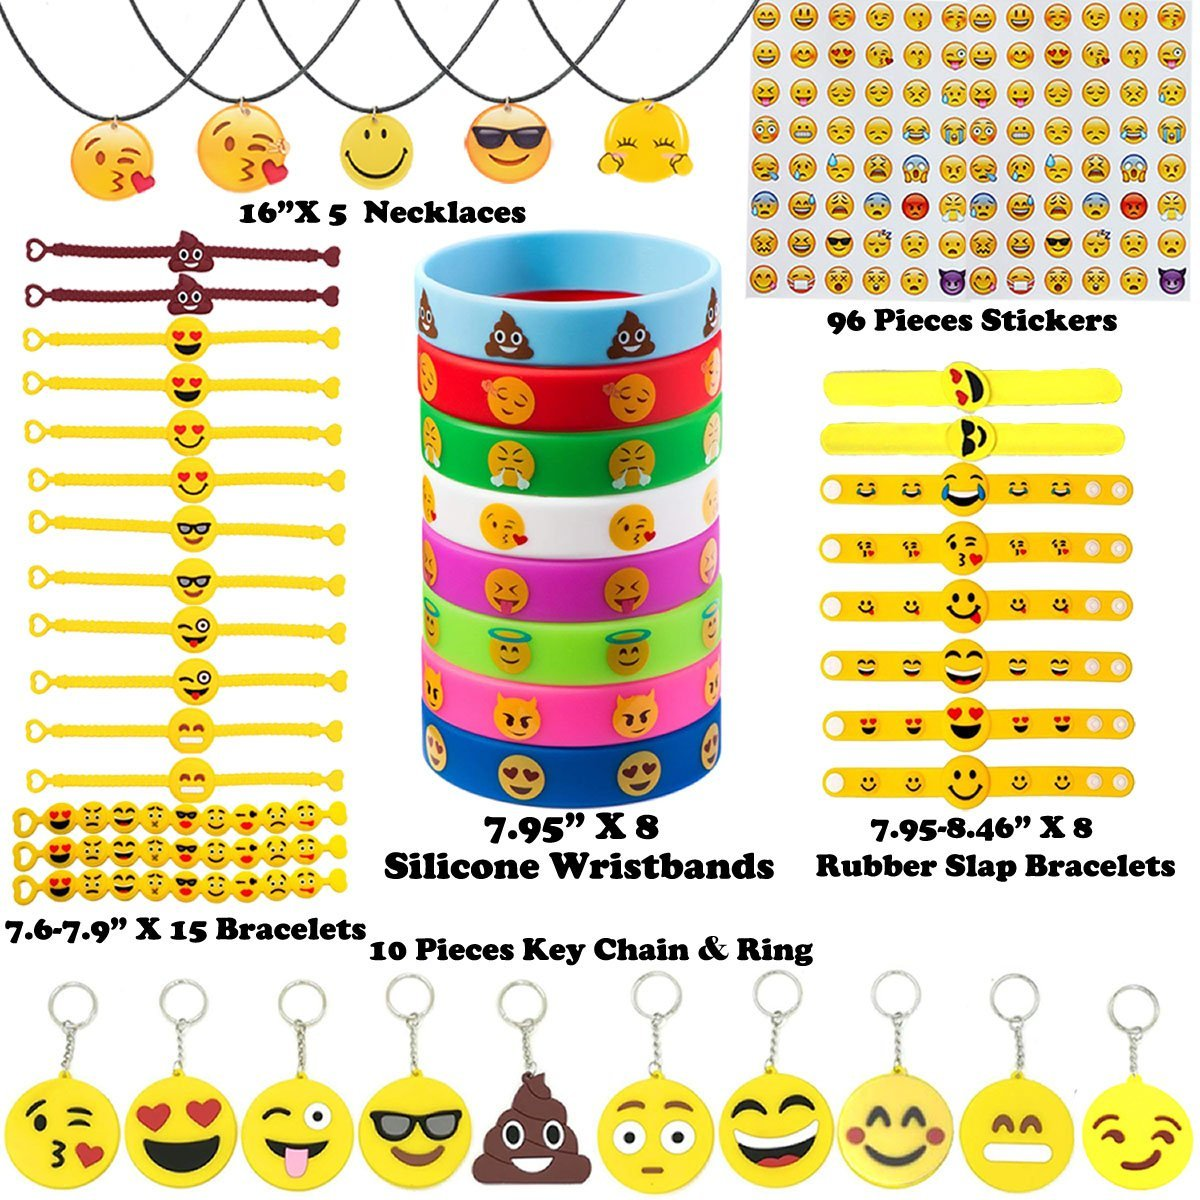 Emoji Party Supplies Kids' Dress-up Toys Bulk Set - 142 Pieces Emoticon Rubber Wristbands Bracelets Assorted Kit - Birthday Party Favor Decoration Mega Pack - Children Prizes Novelty Crafts Gift by Youwith Joy (Image #2)